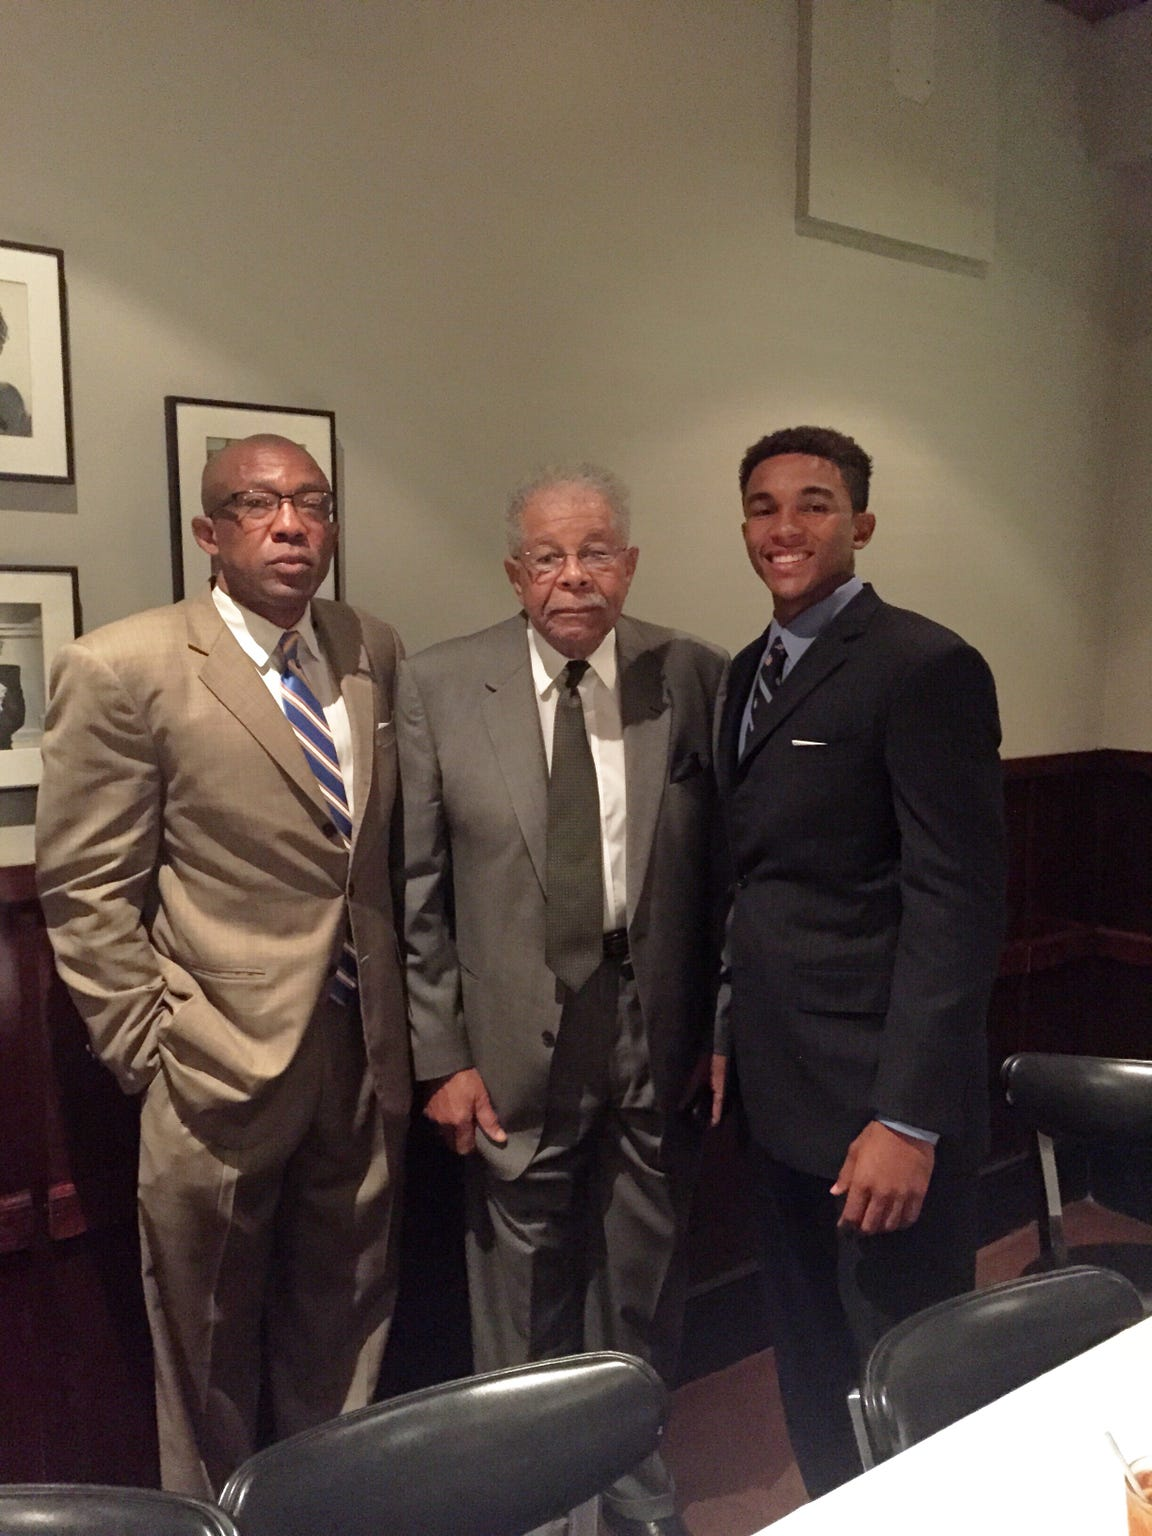 Don Jackson (left) stands with his father (middle) and his son Trey (right).